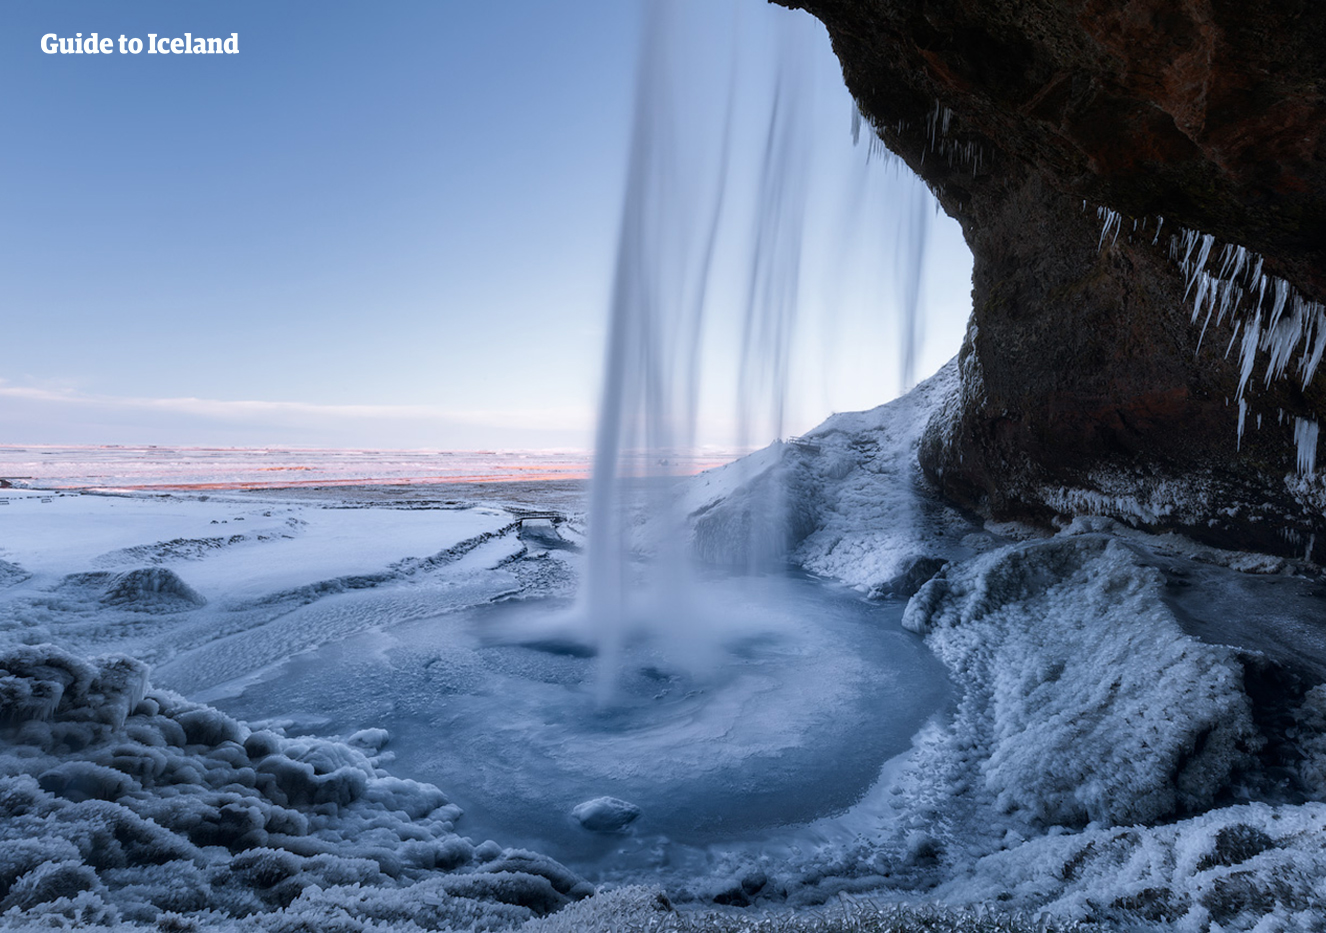 10 Day Northern Lights Winter Self Drive of Iceland's South Coast & Snaefellsnes Peninsula - day 5